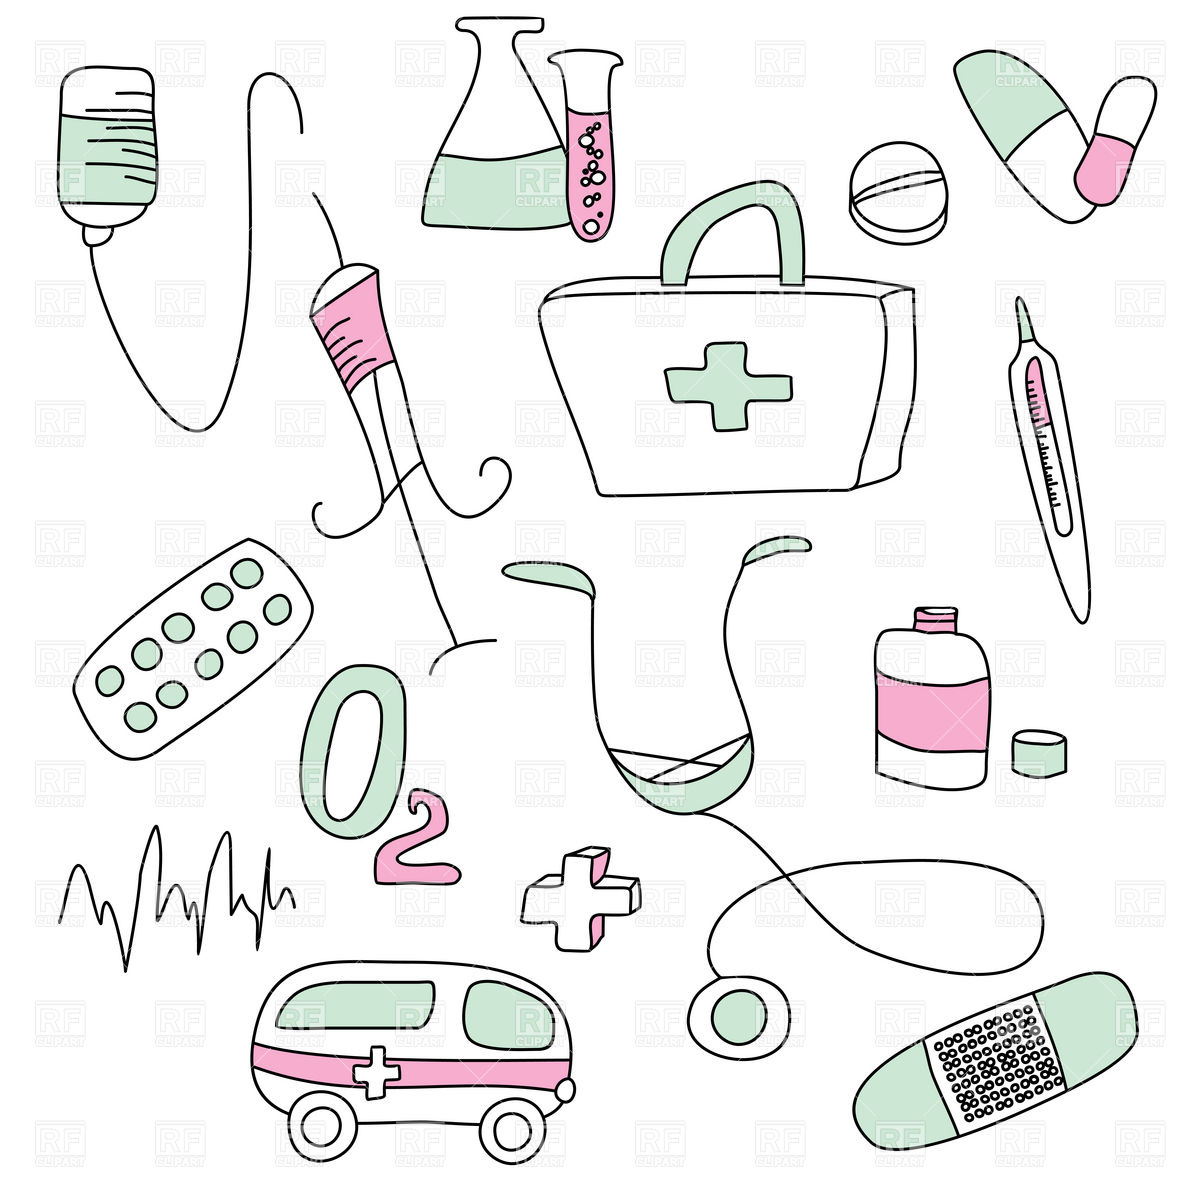 Medical Equipment And Objects 20149 Healthcare Medical Download